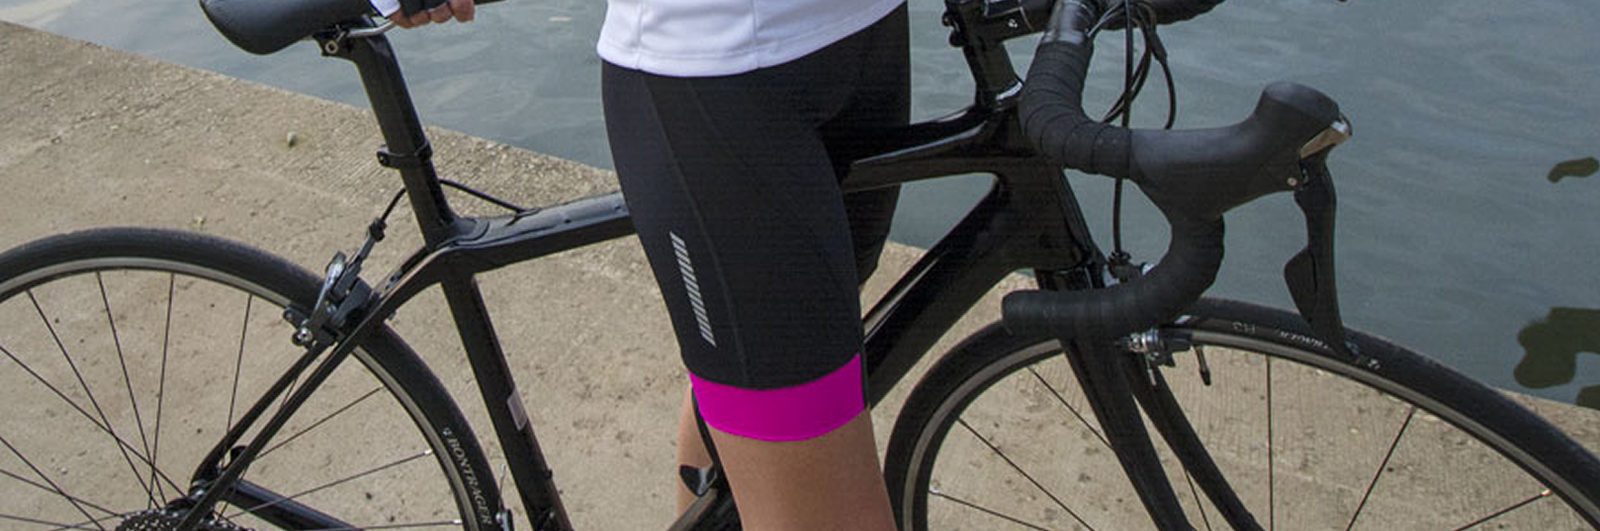 womens-bicycle-shorts.png